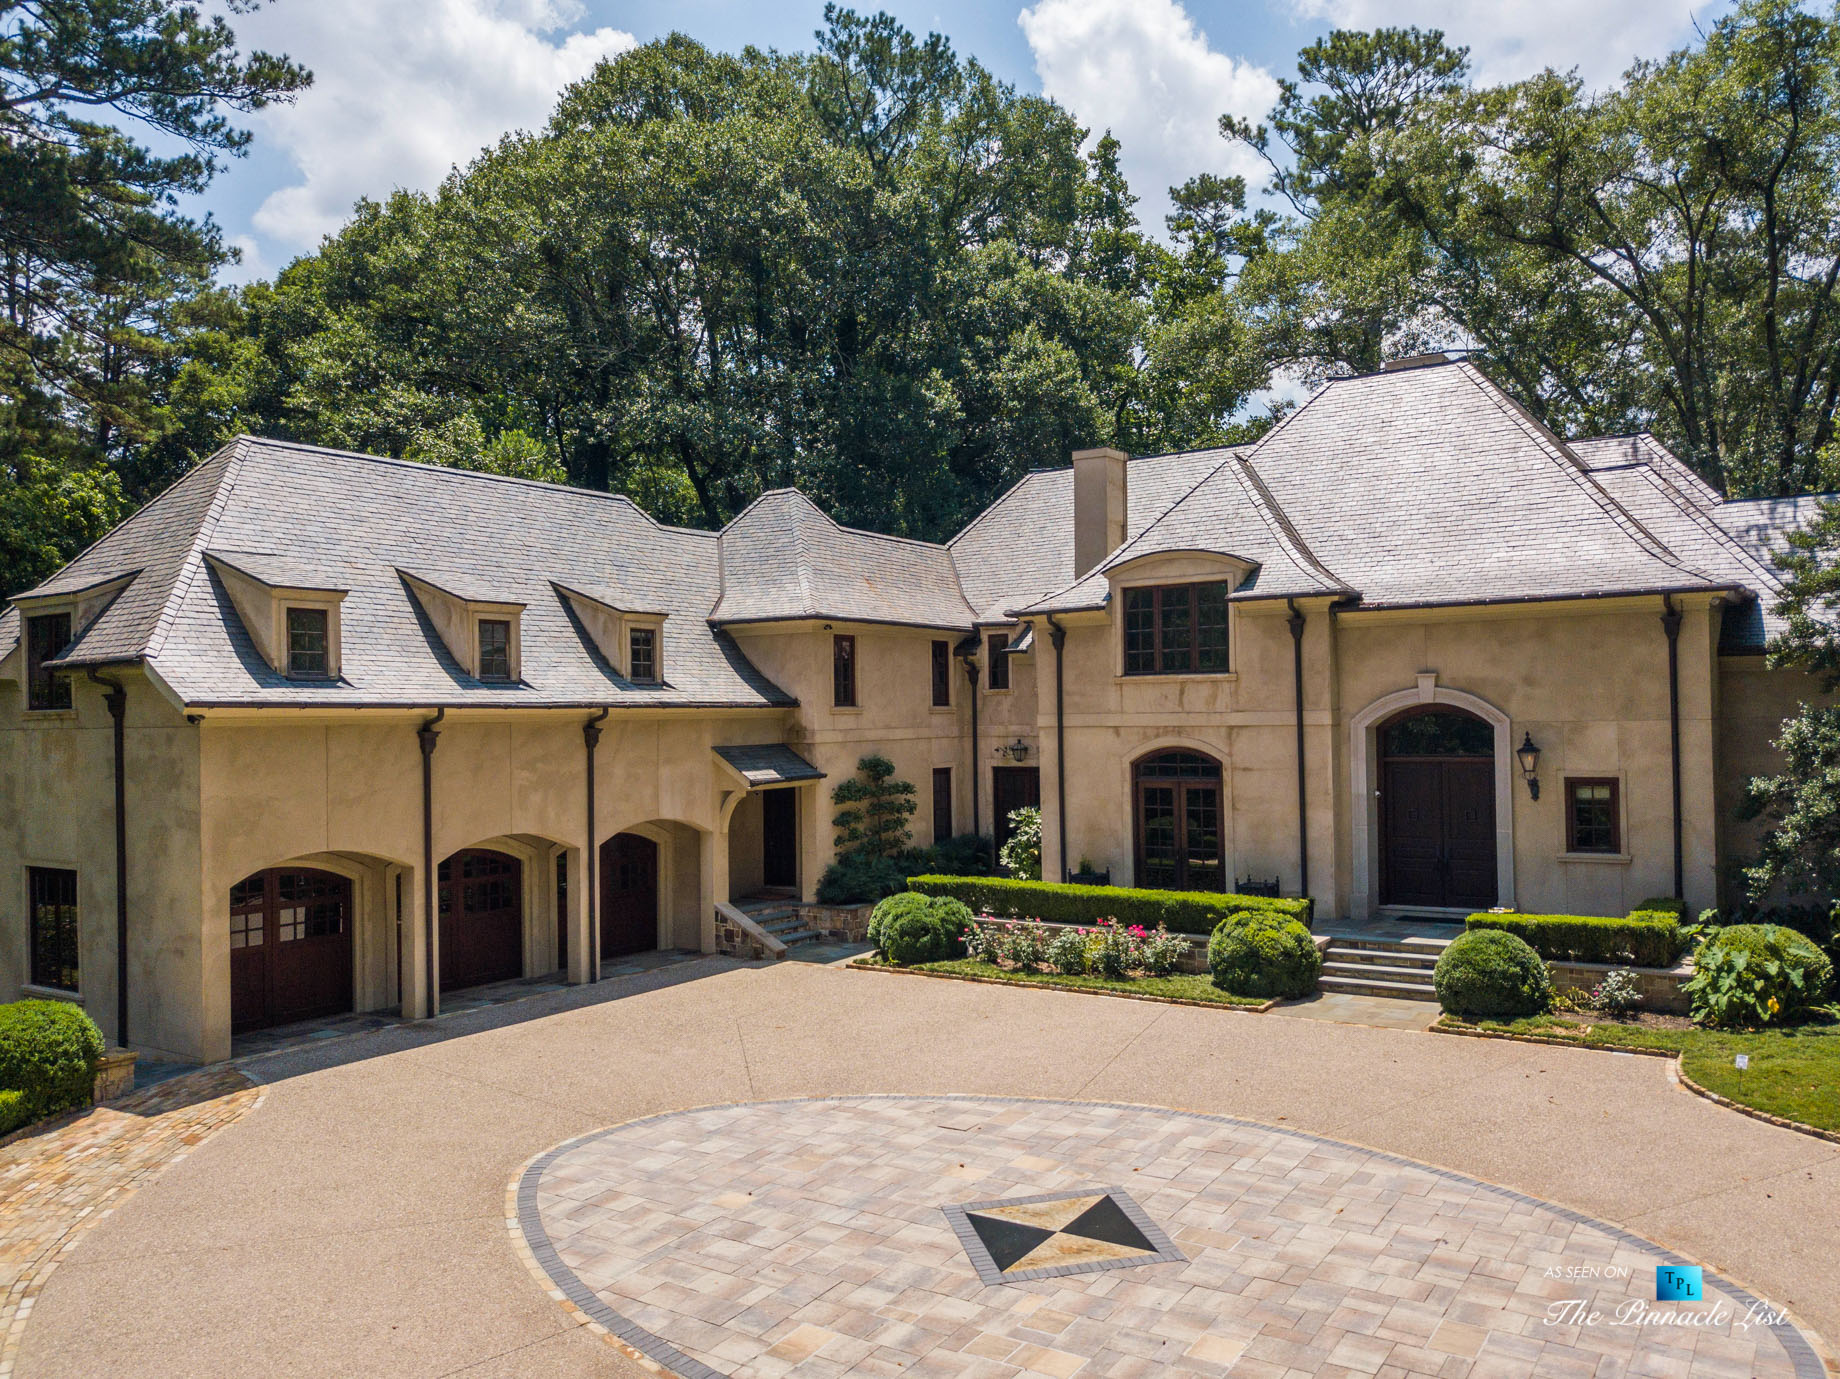 450 Blackland Rd NW, Atlanta, GA, USA